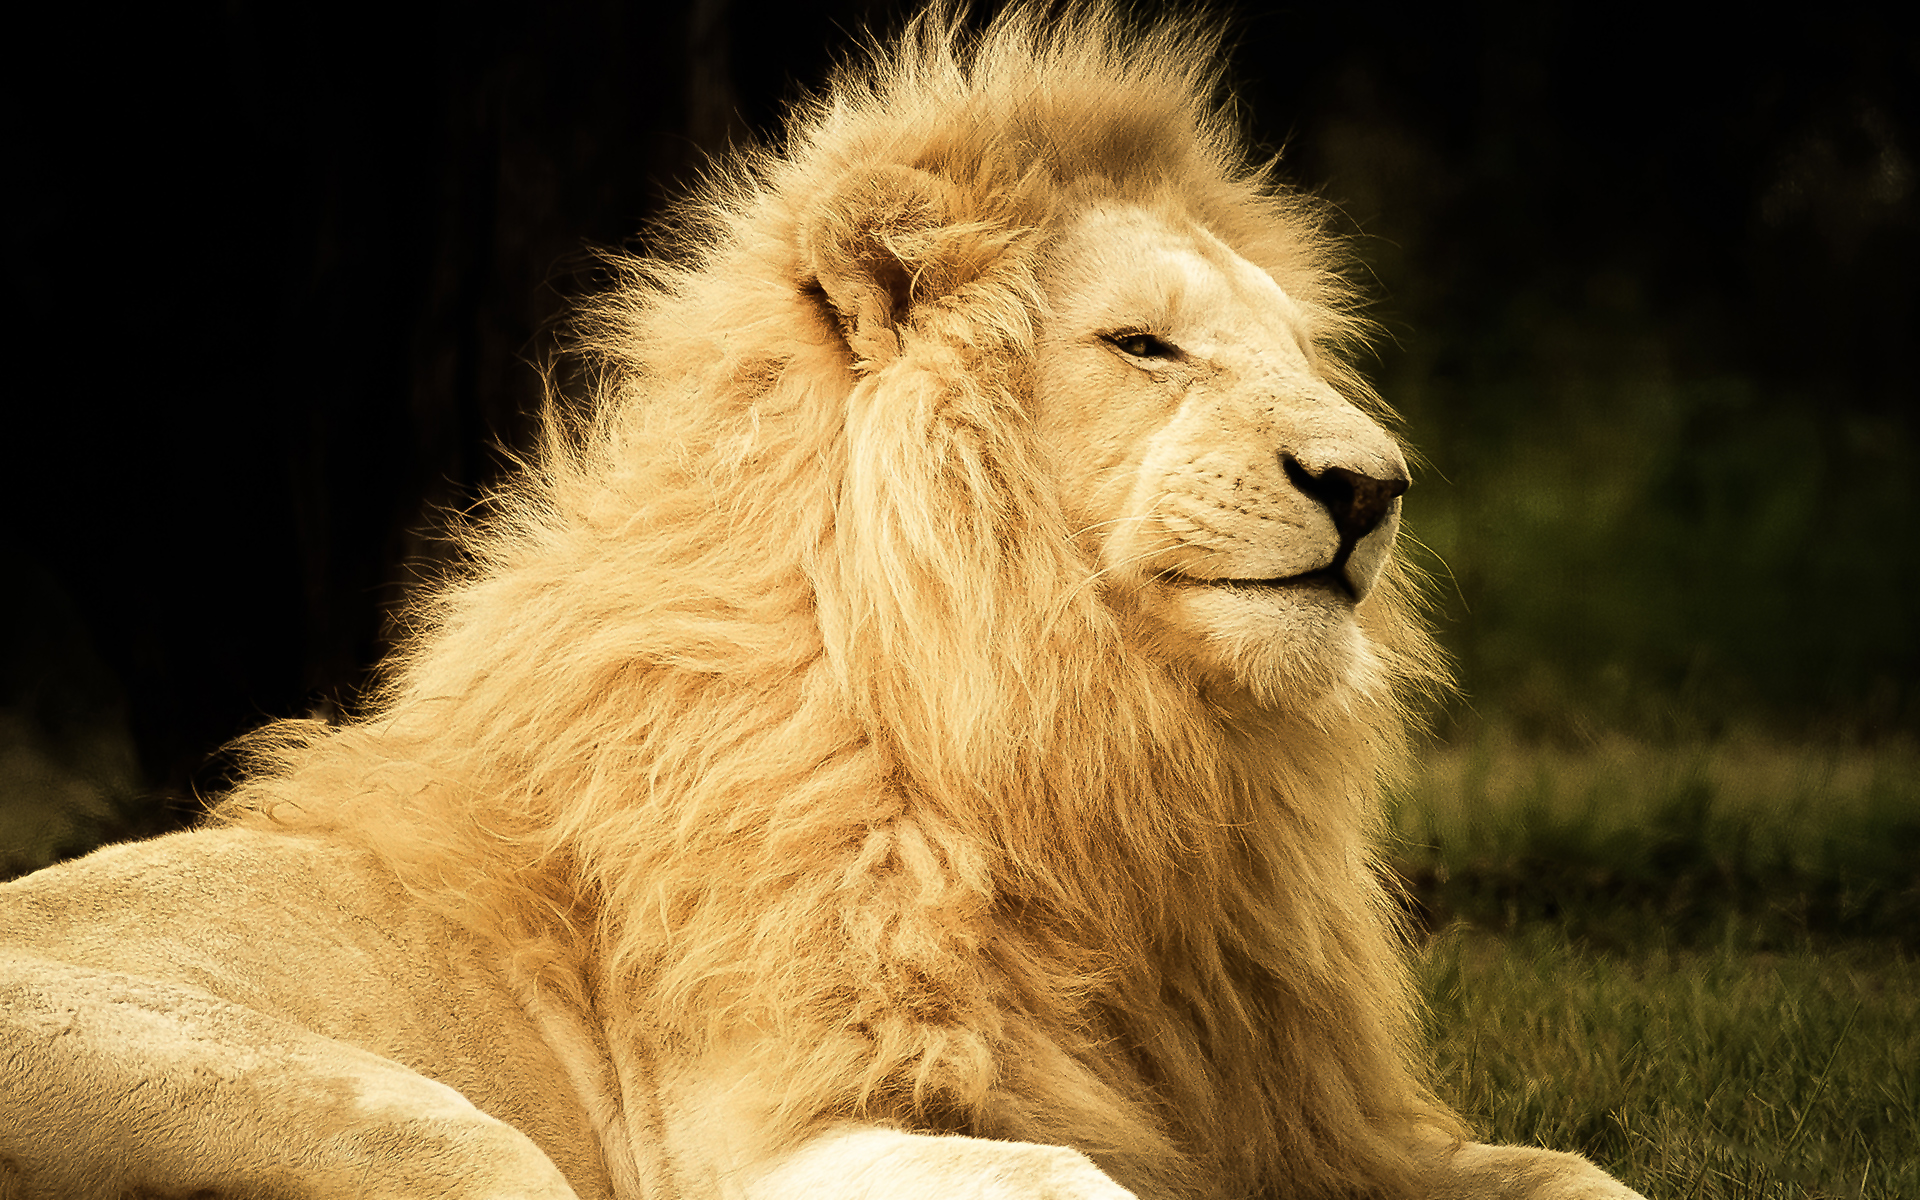 lion majestic animal